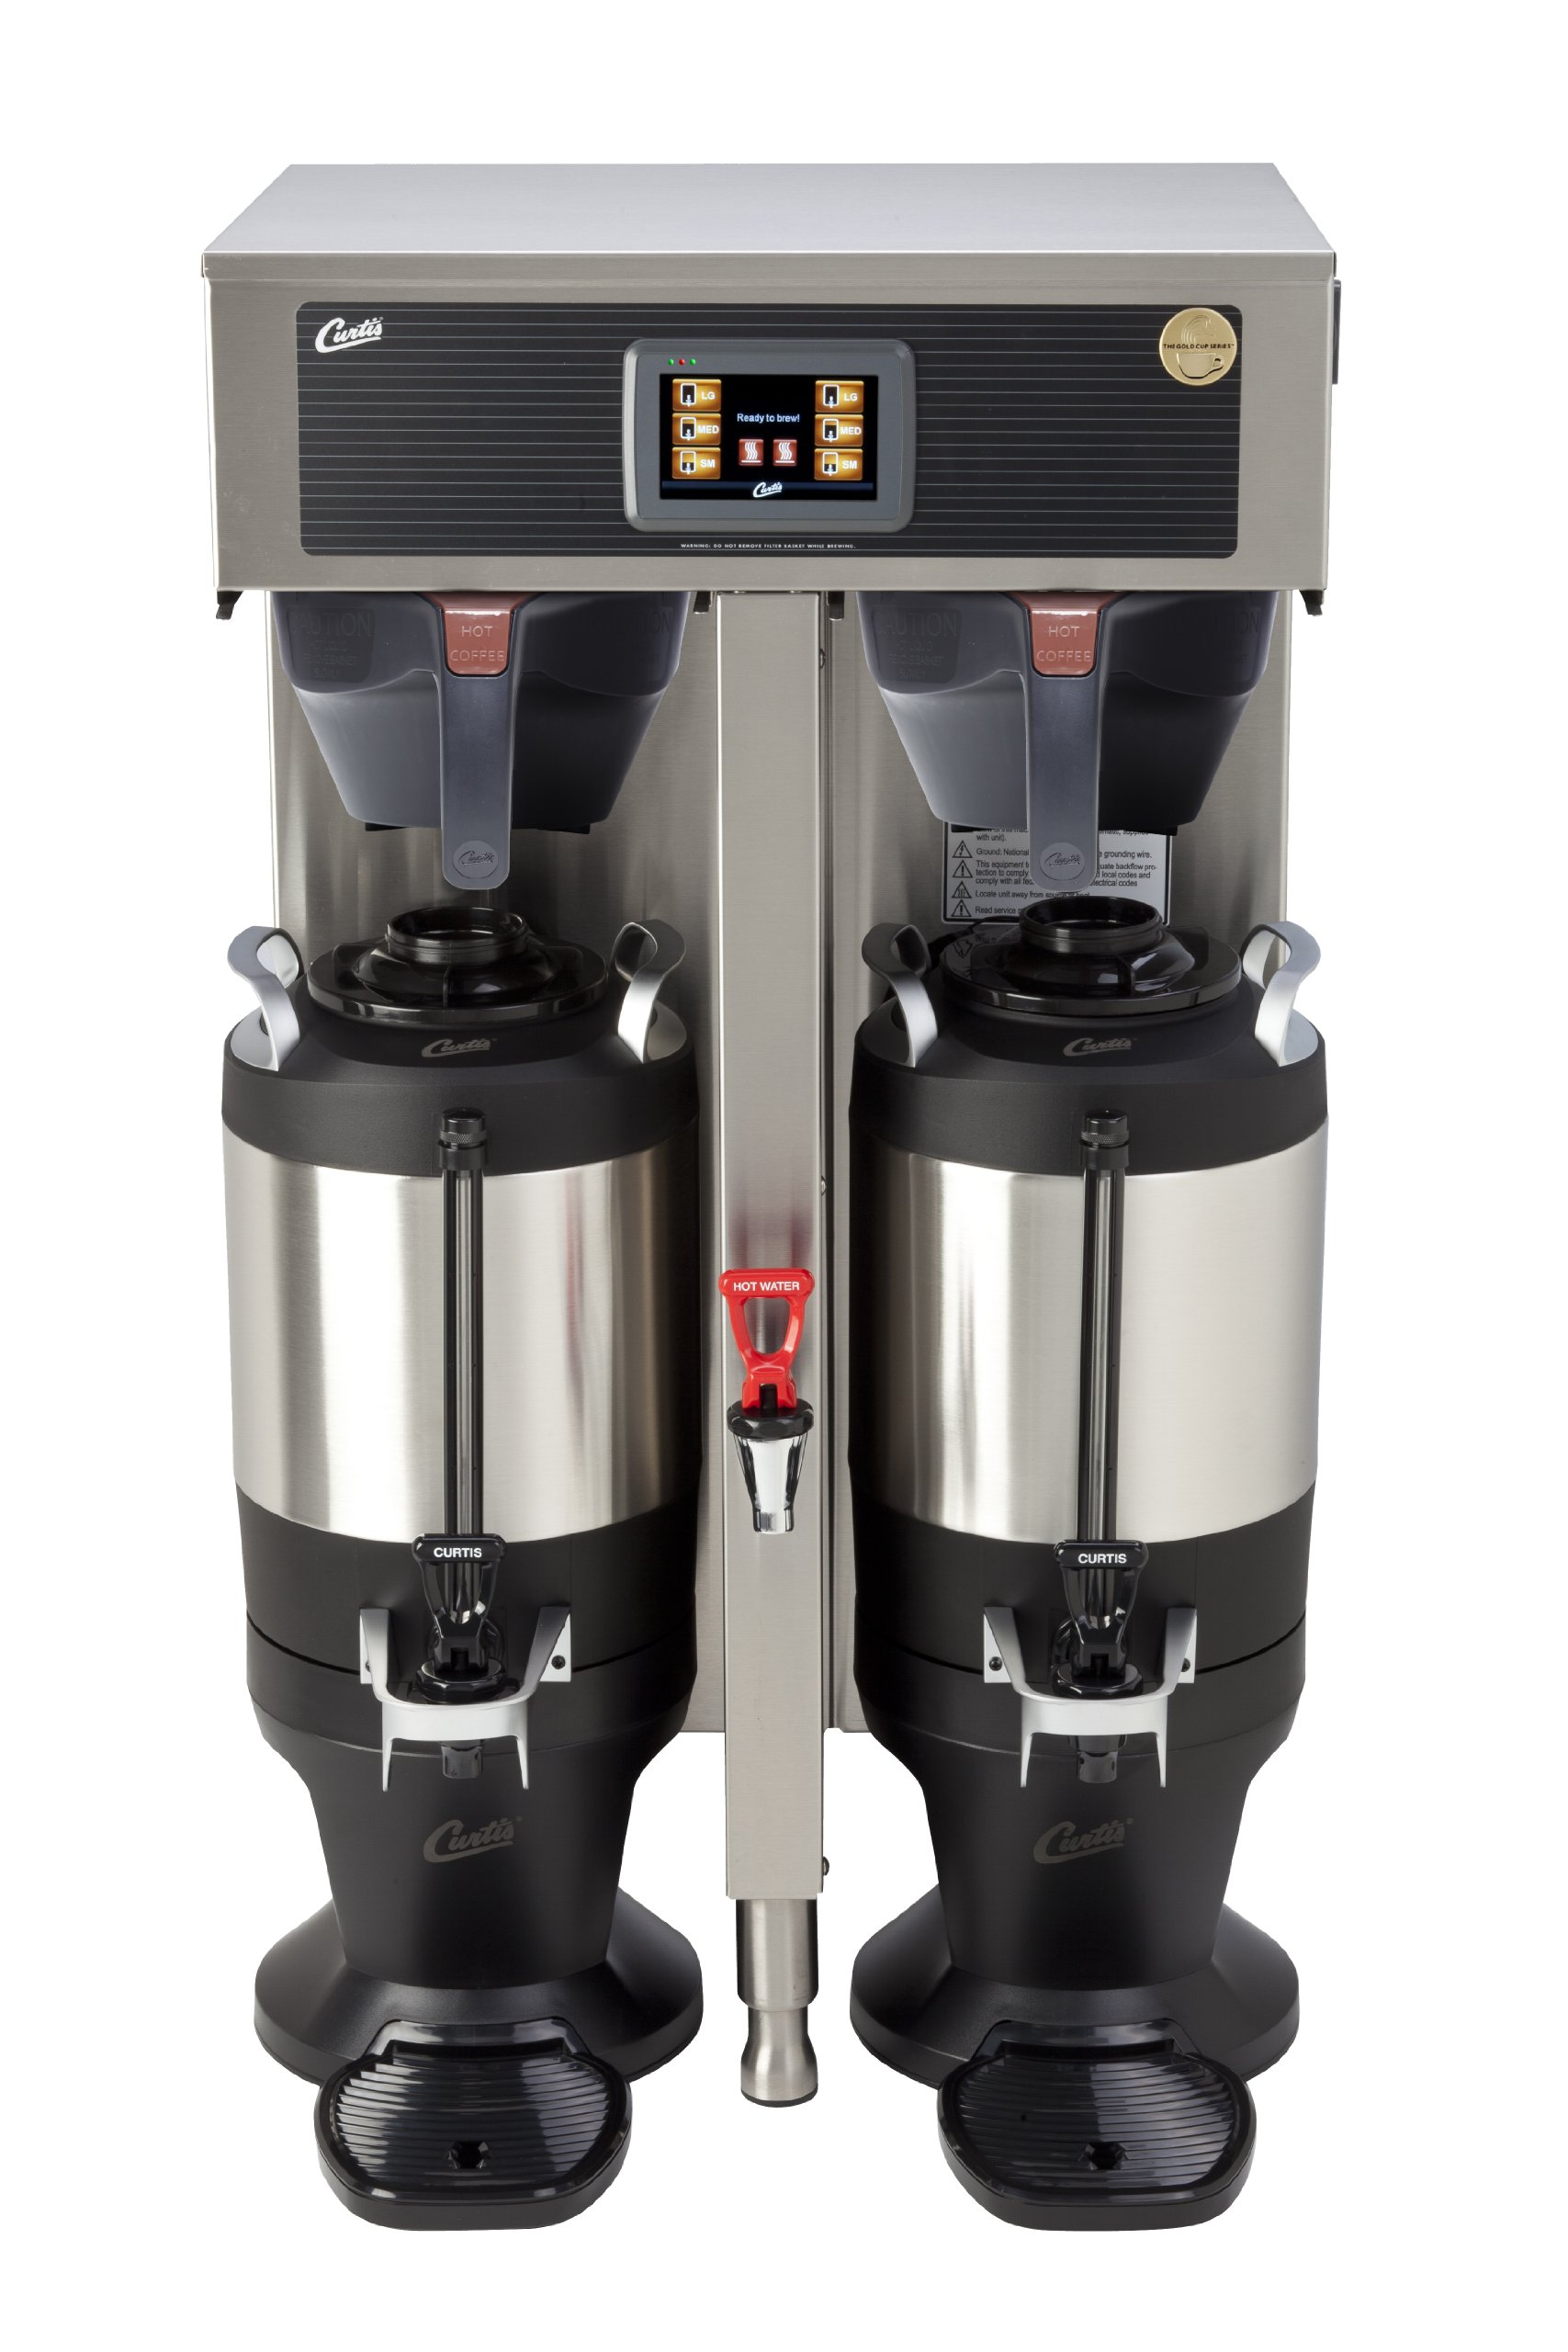 Wilbur Curtis G4 ThermoPro Twin Coffee Brewer, 1.5 Gallon - Commercial Coffee Brewer  - G4TP2T10A3100 (Each)